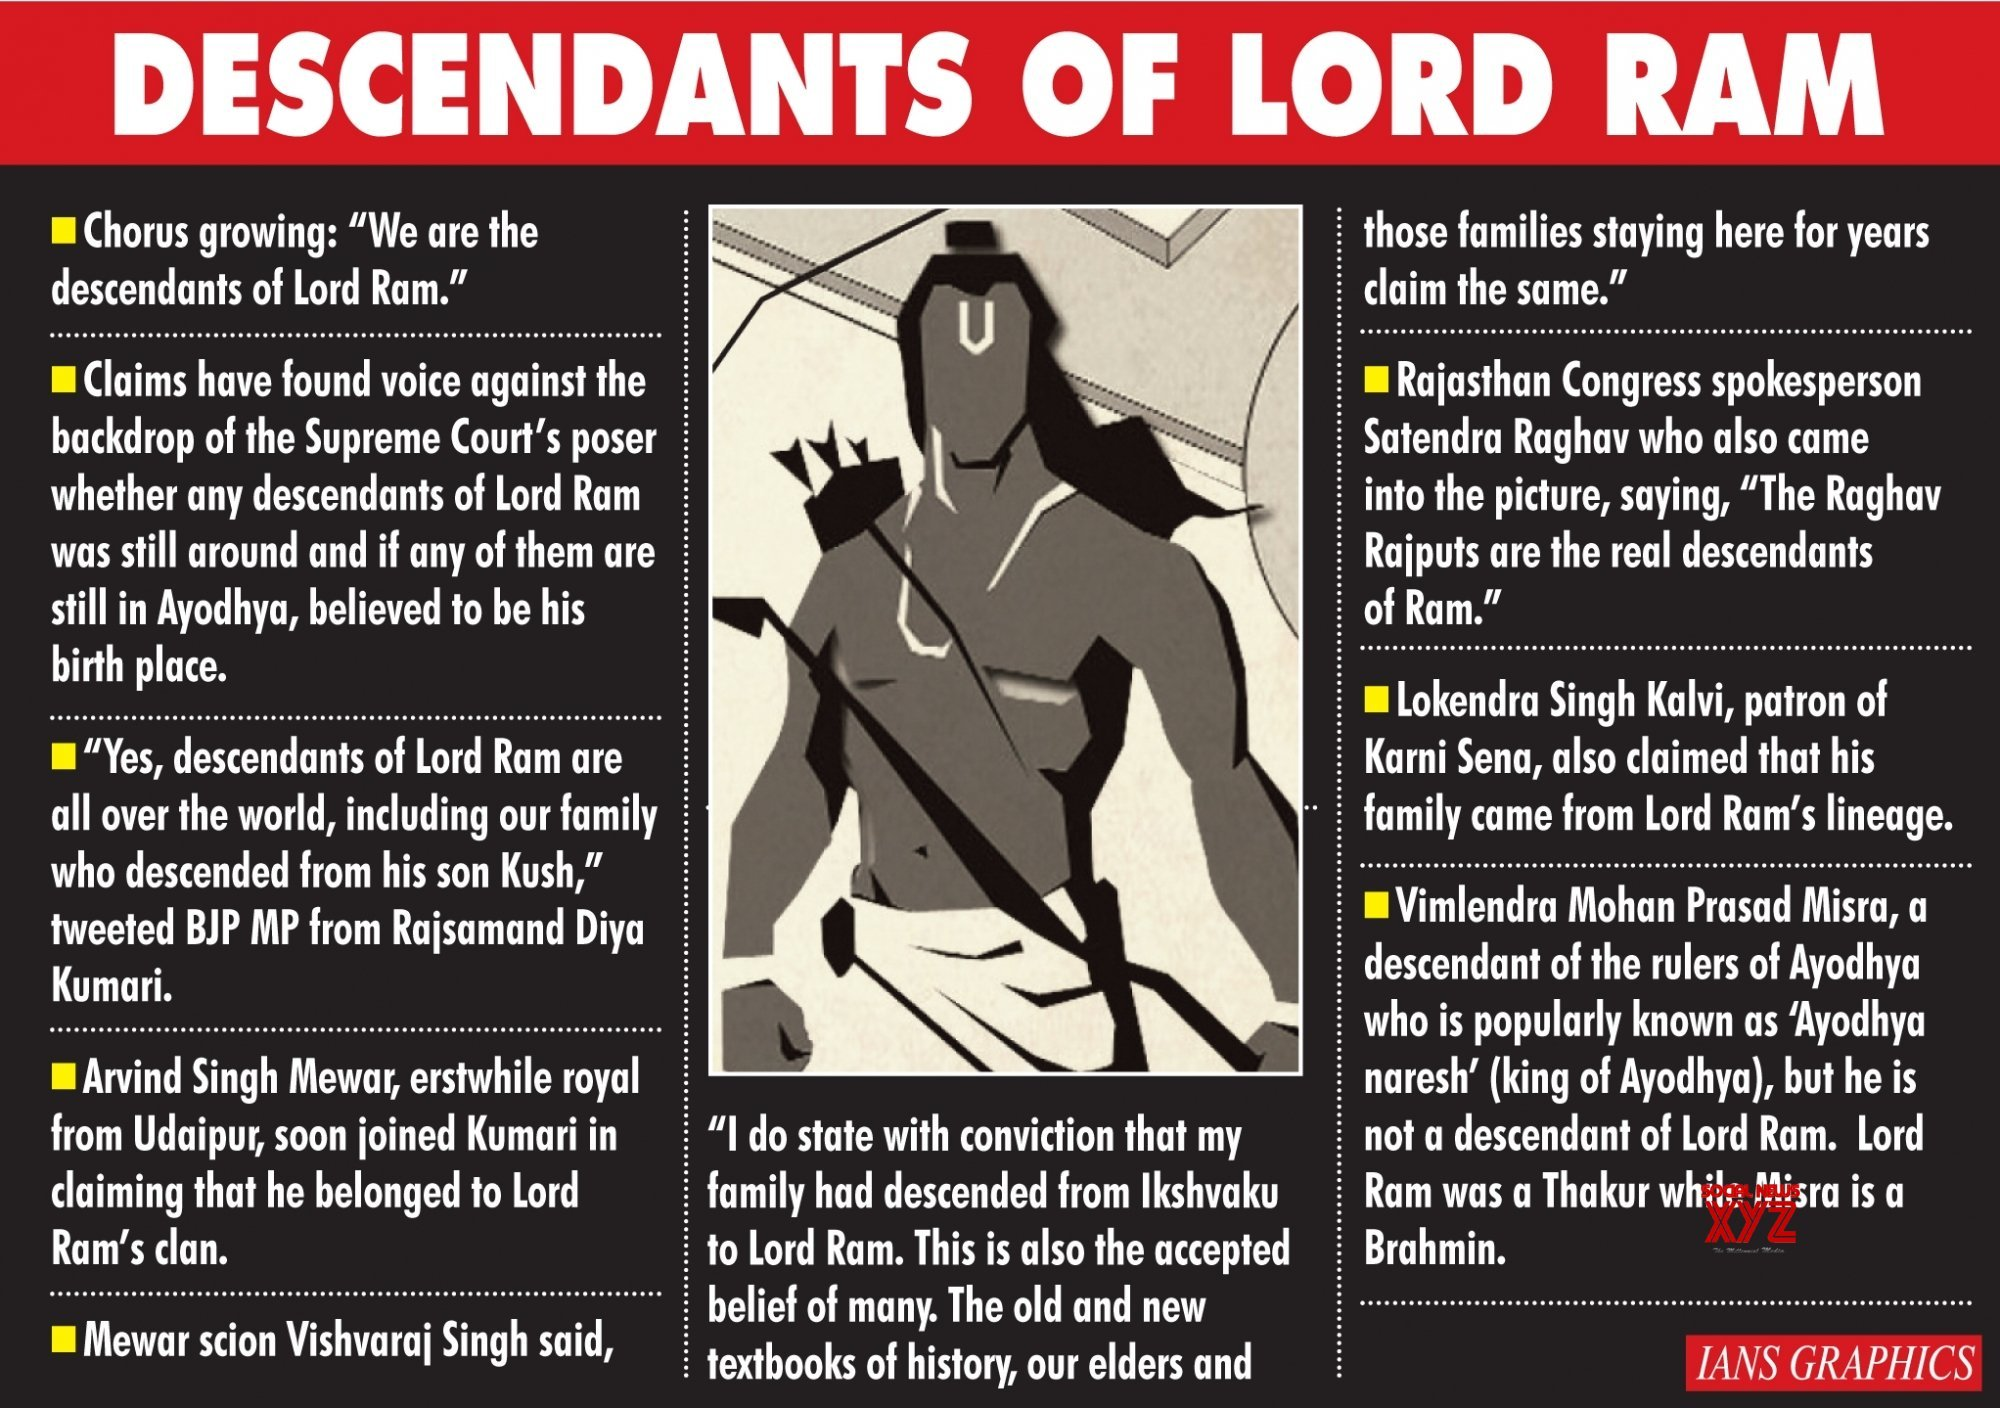 Race on to claim legacy of Lord Ram